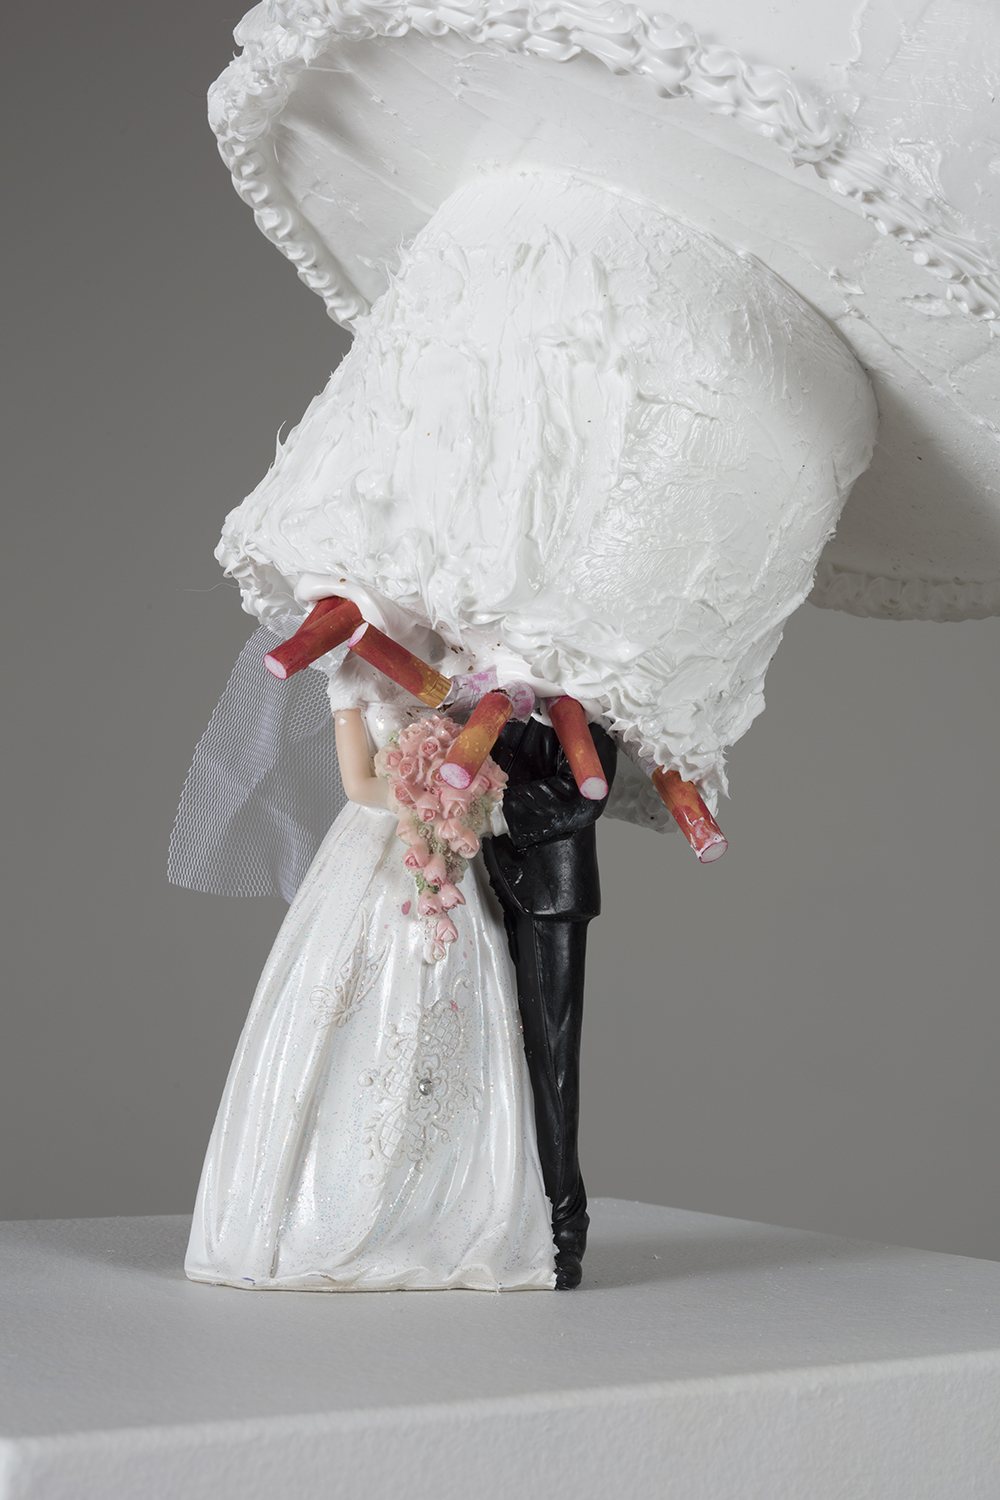 Addie Wagenknecht. <em>Waiting for Mr. Right</em>, 2017. Polystyrene, silicone, alabaster, drip candles and artificial flowers, 47 x 12 1/2 x 11 inches. Detail